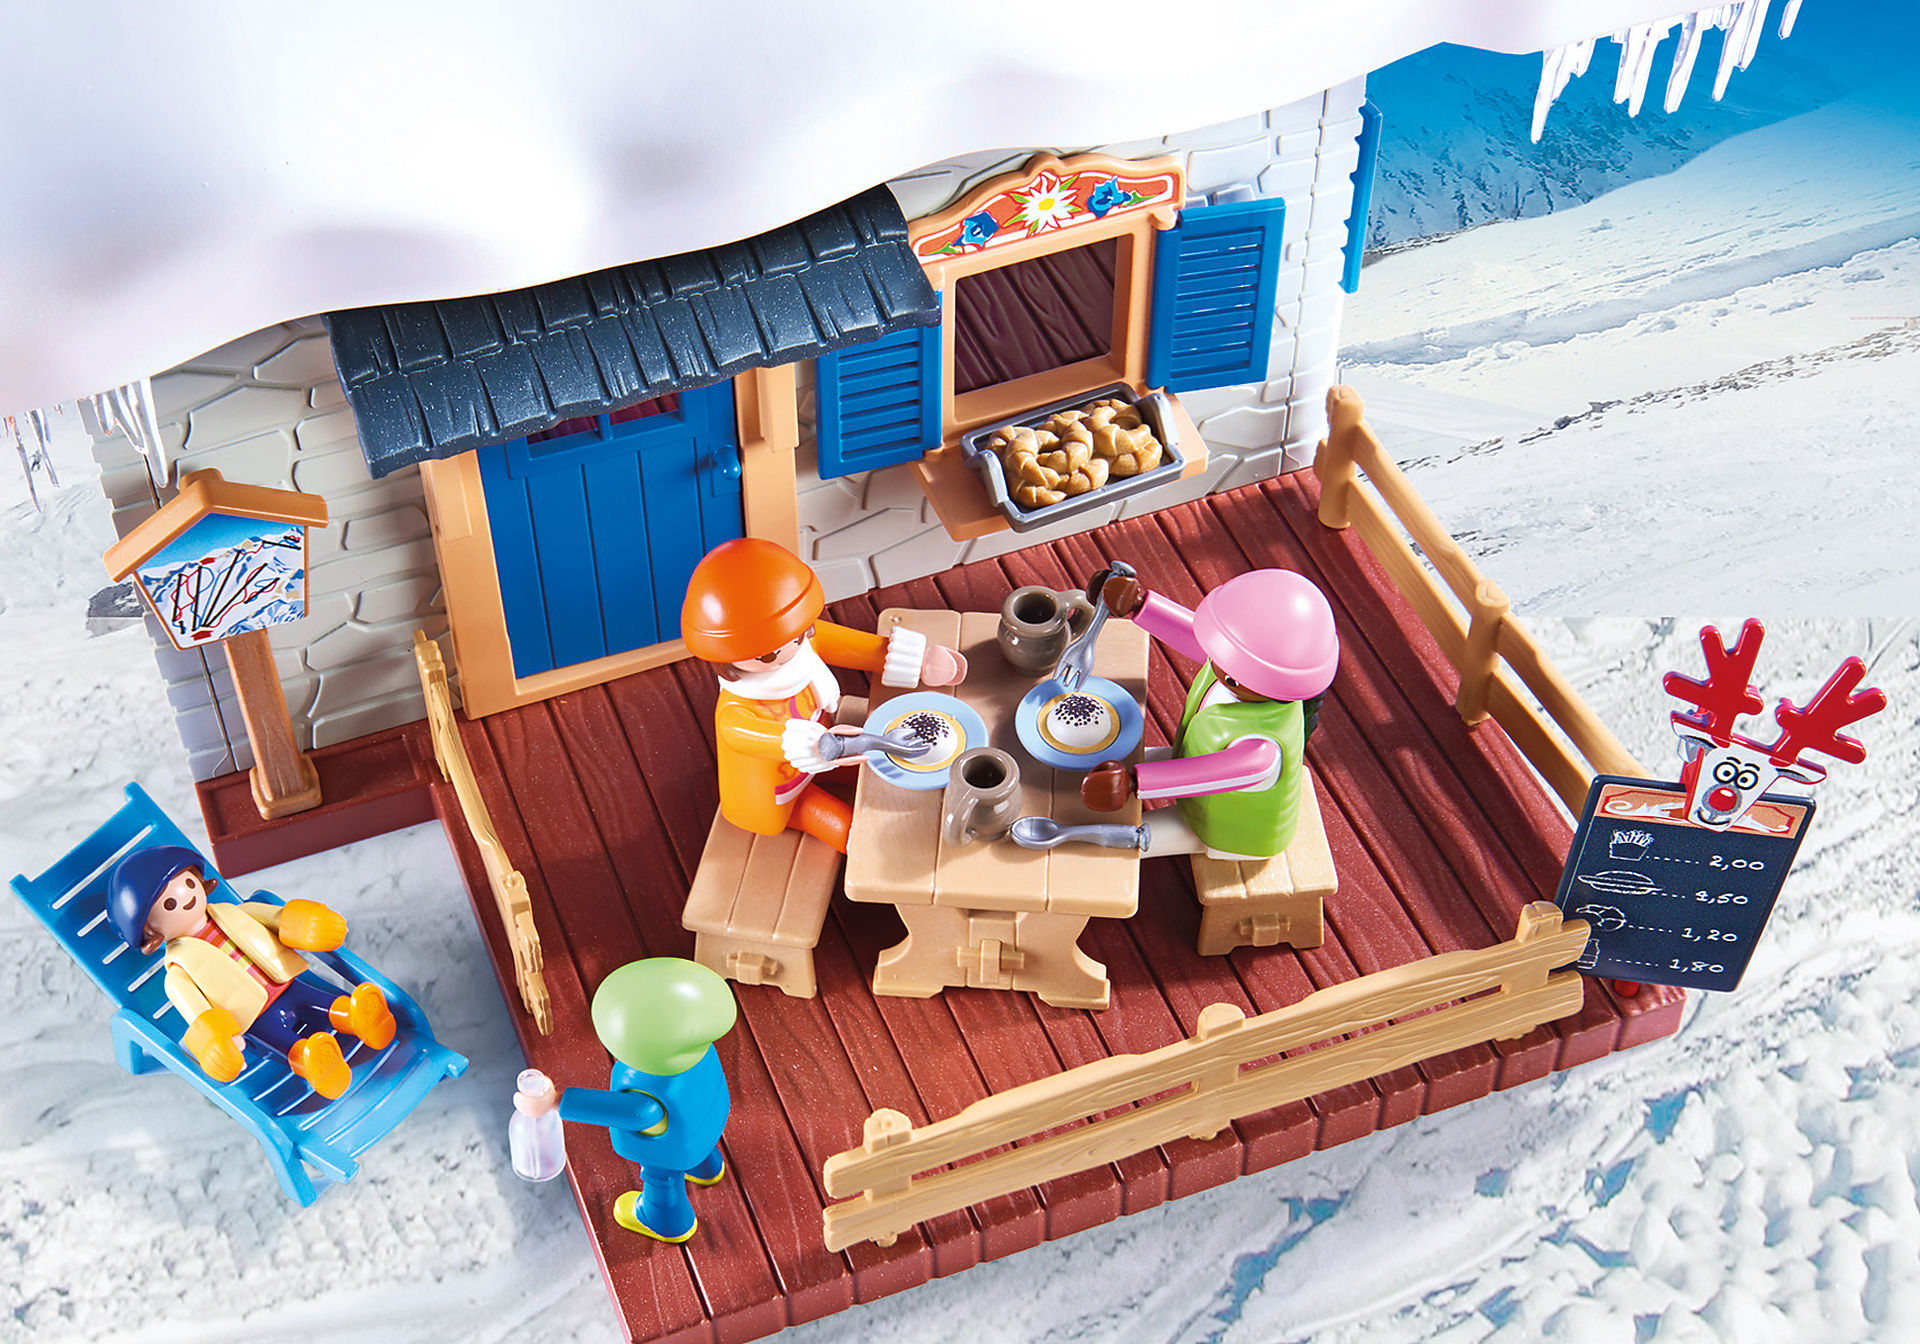 http://media.playmobil.com/i/playmobil/9280_product_extra1/Ski Lodge